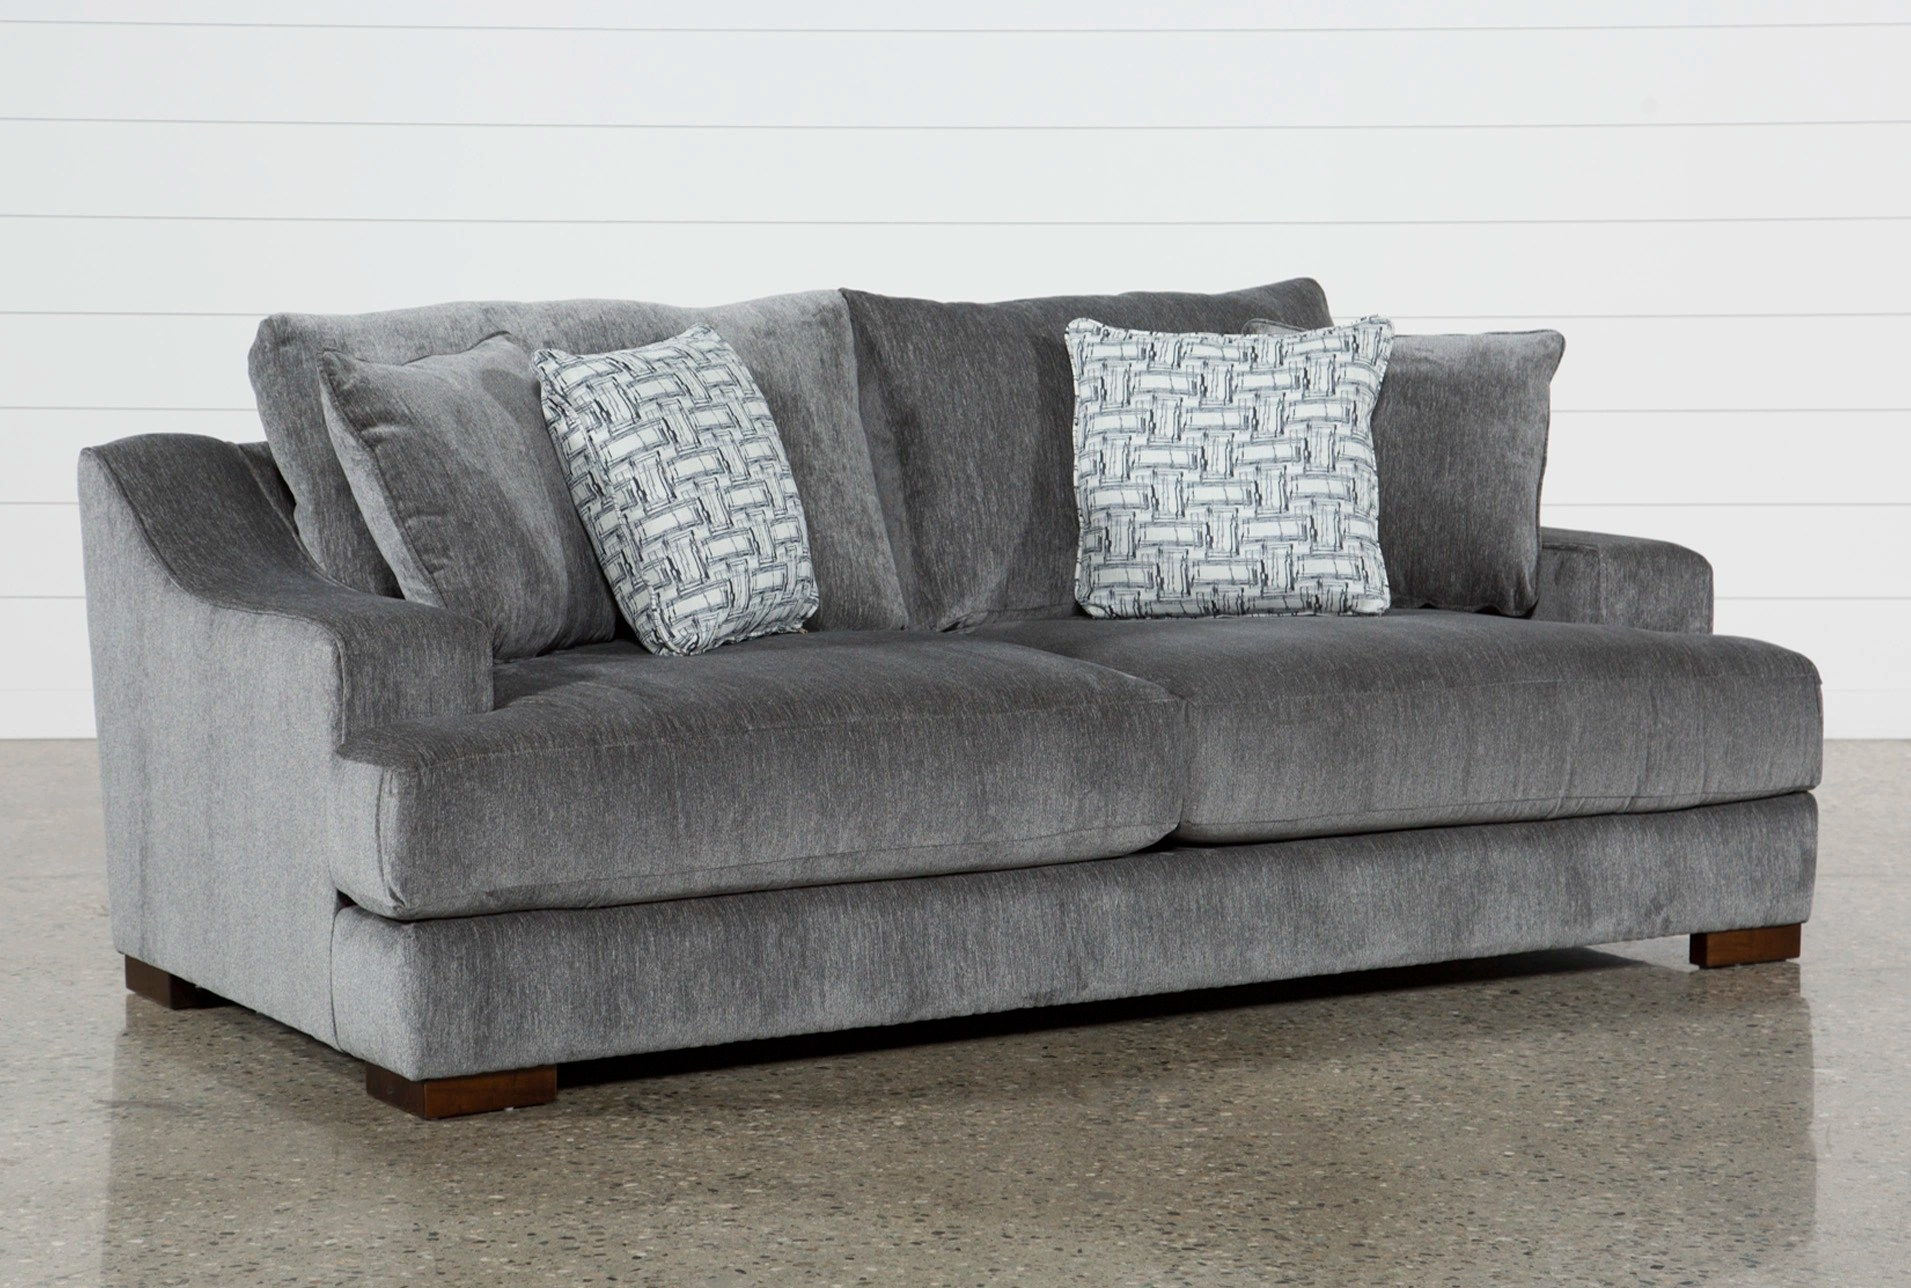 Klassische Sofas You Can Assemble Fabric Sofas Couches Free Assembly With Delivery Living Spaces